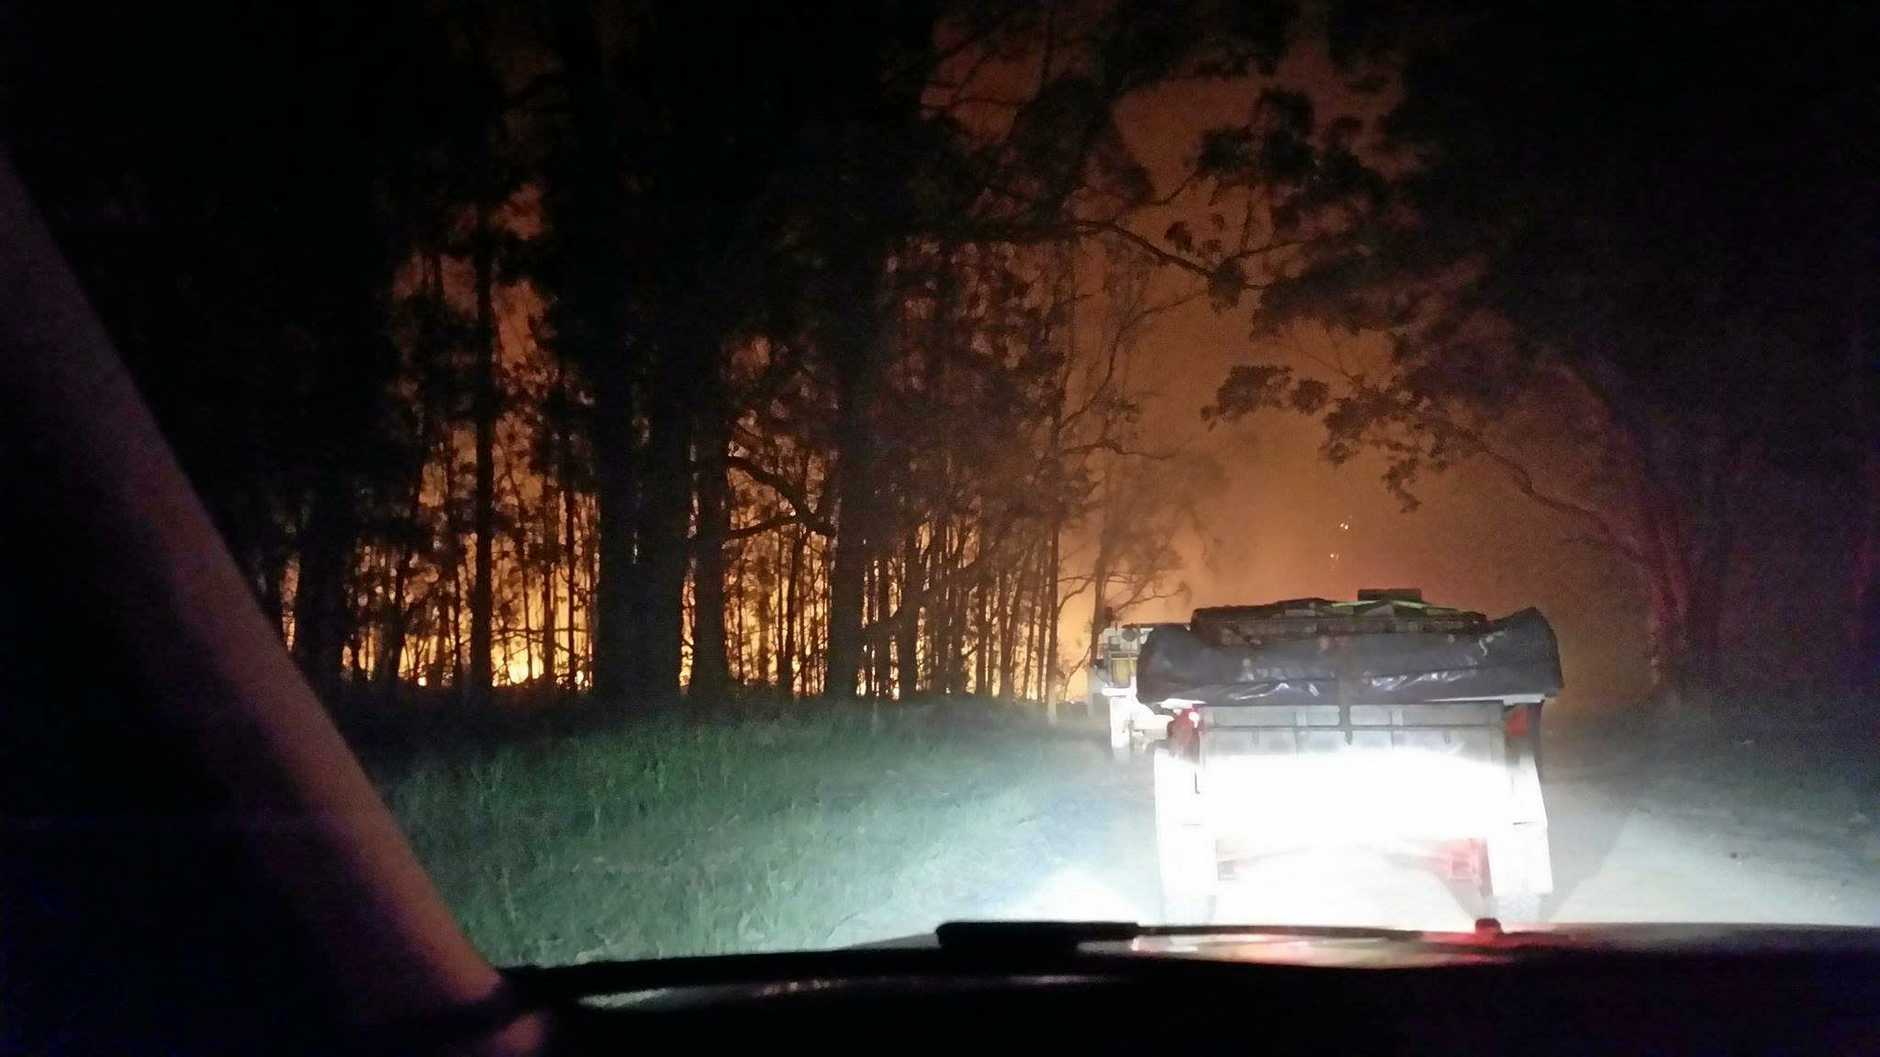 SMOKE AND FIRE: Holiday-maker Hannah Winter took this photo as she and her partner were being evacuated from the Pebbly Beach campground in the early hours of Saturday morning.